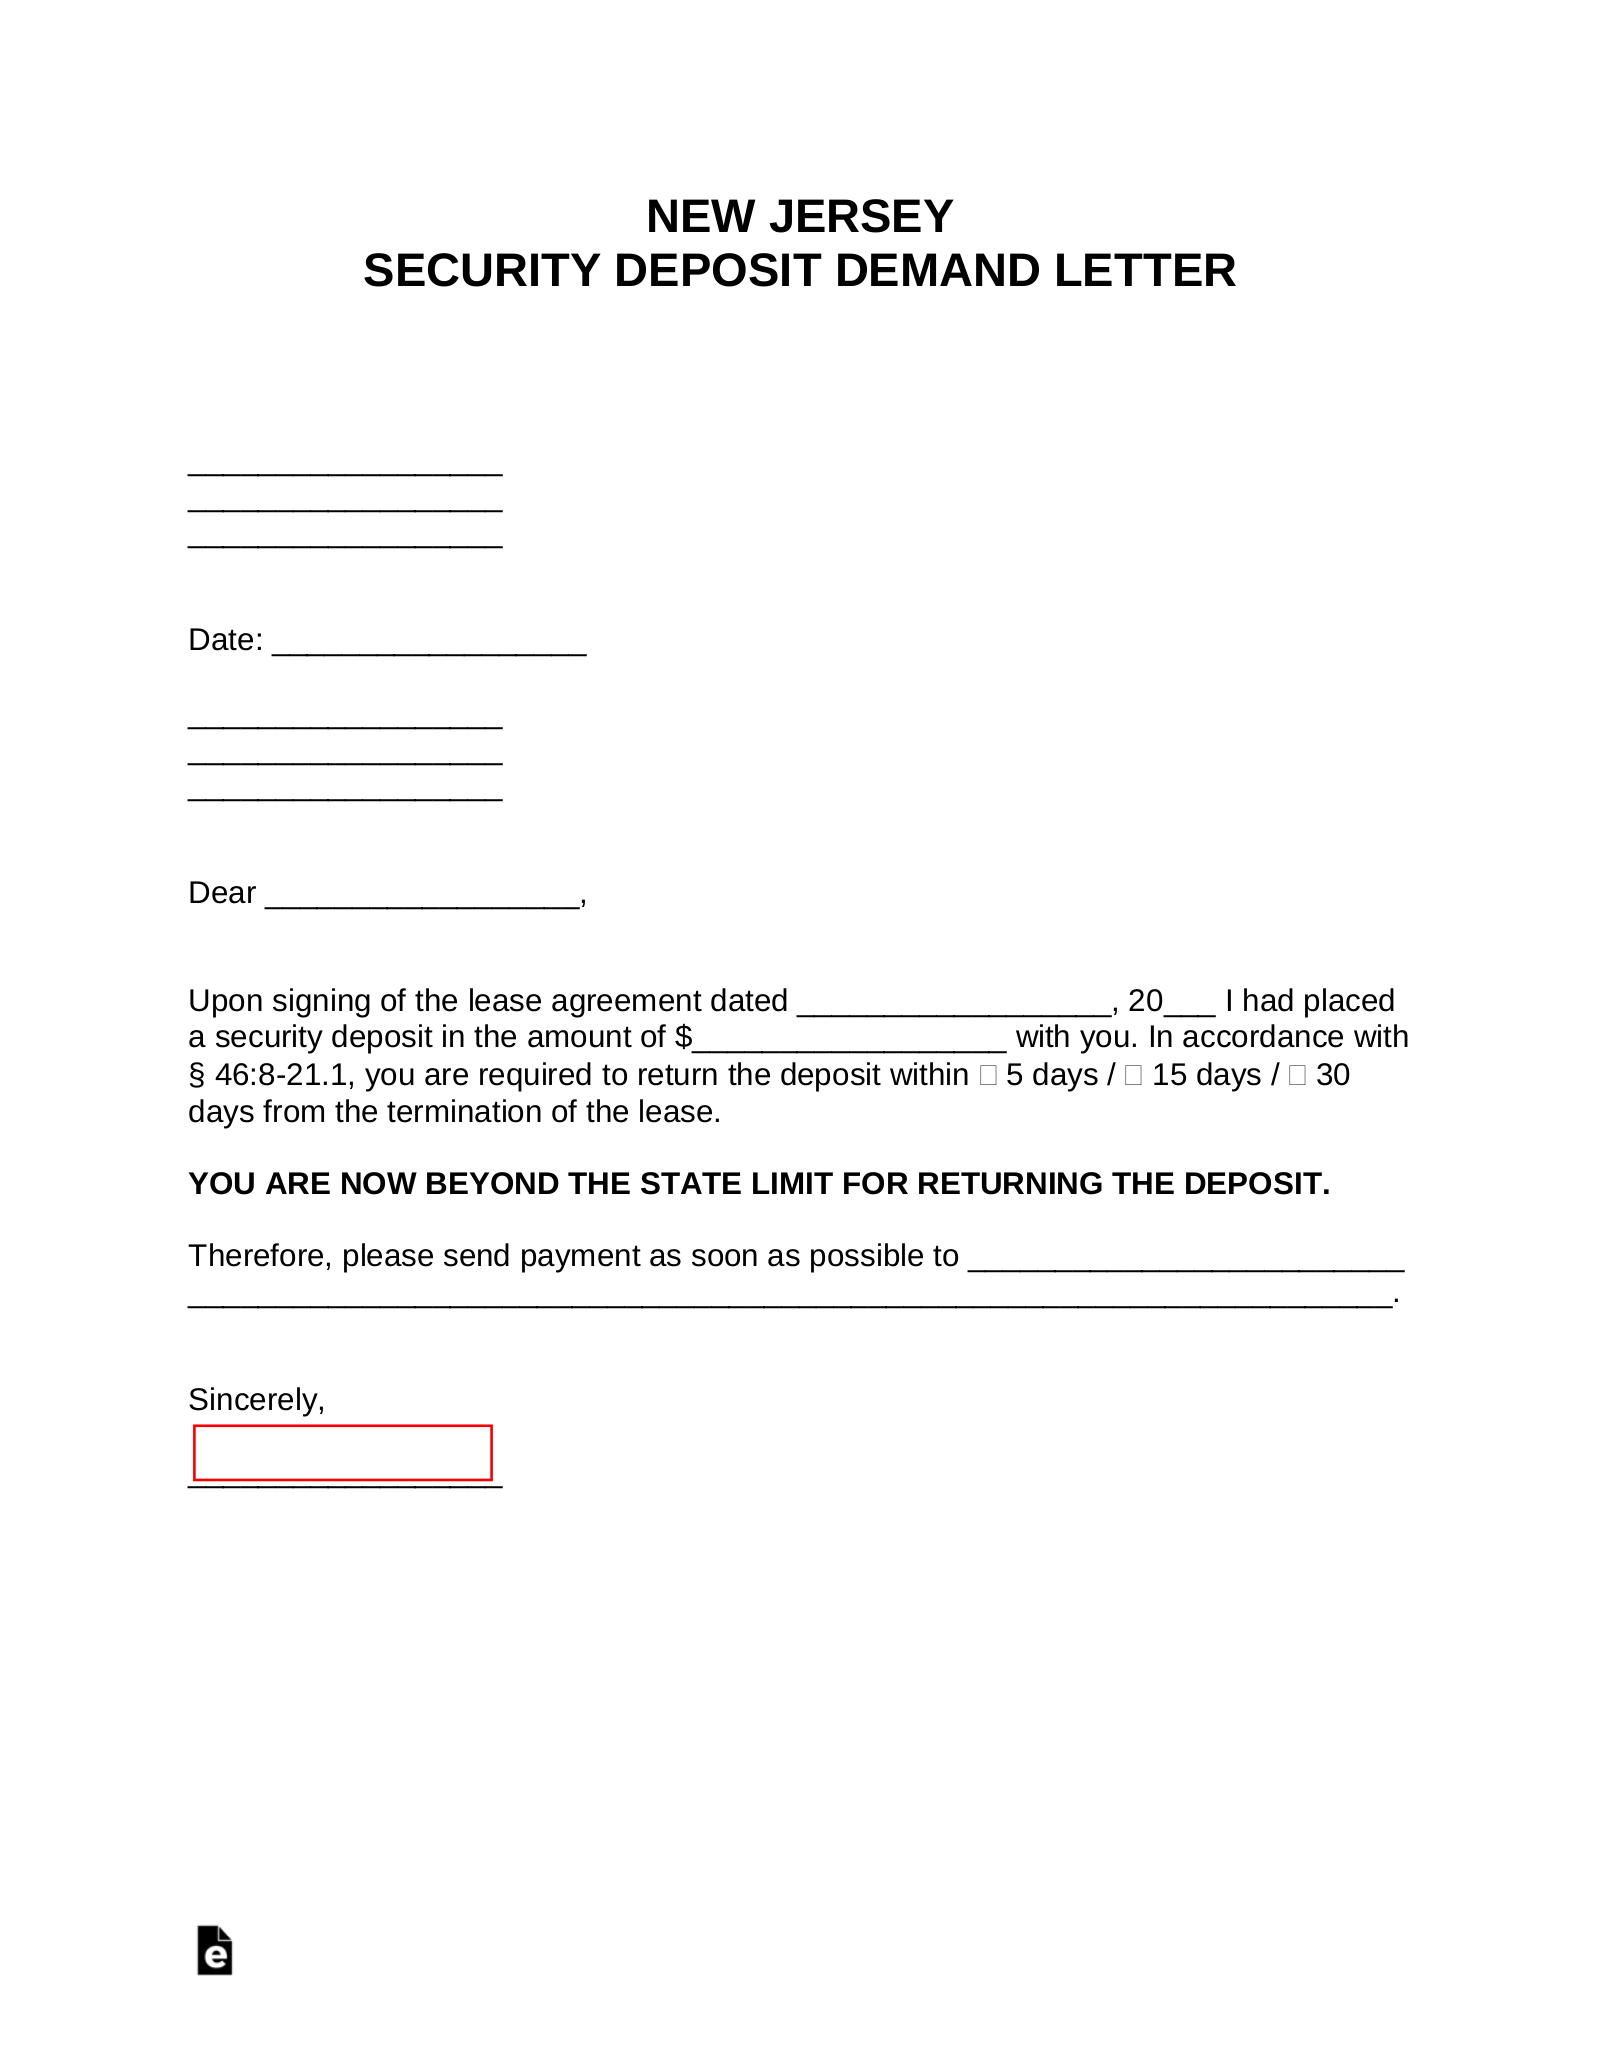 Security Deposit Letter To Tenant from eforms.com